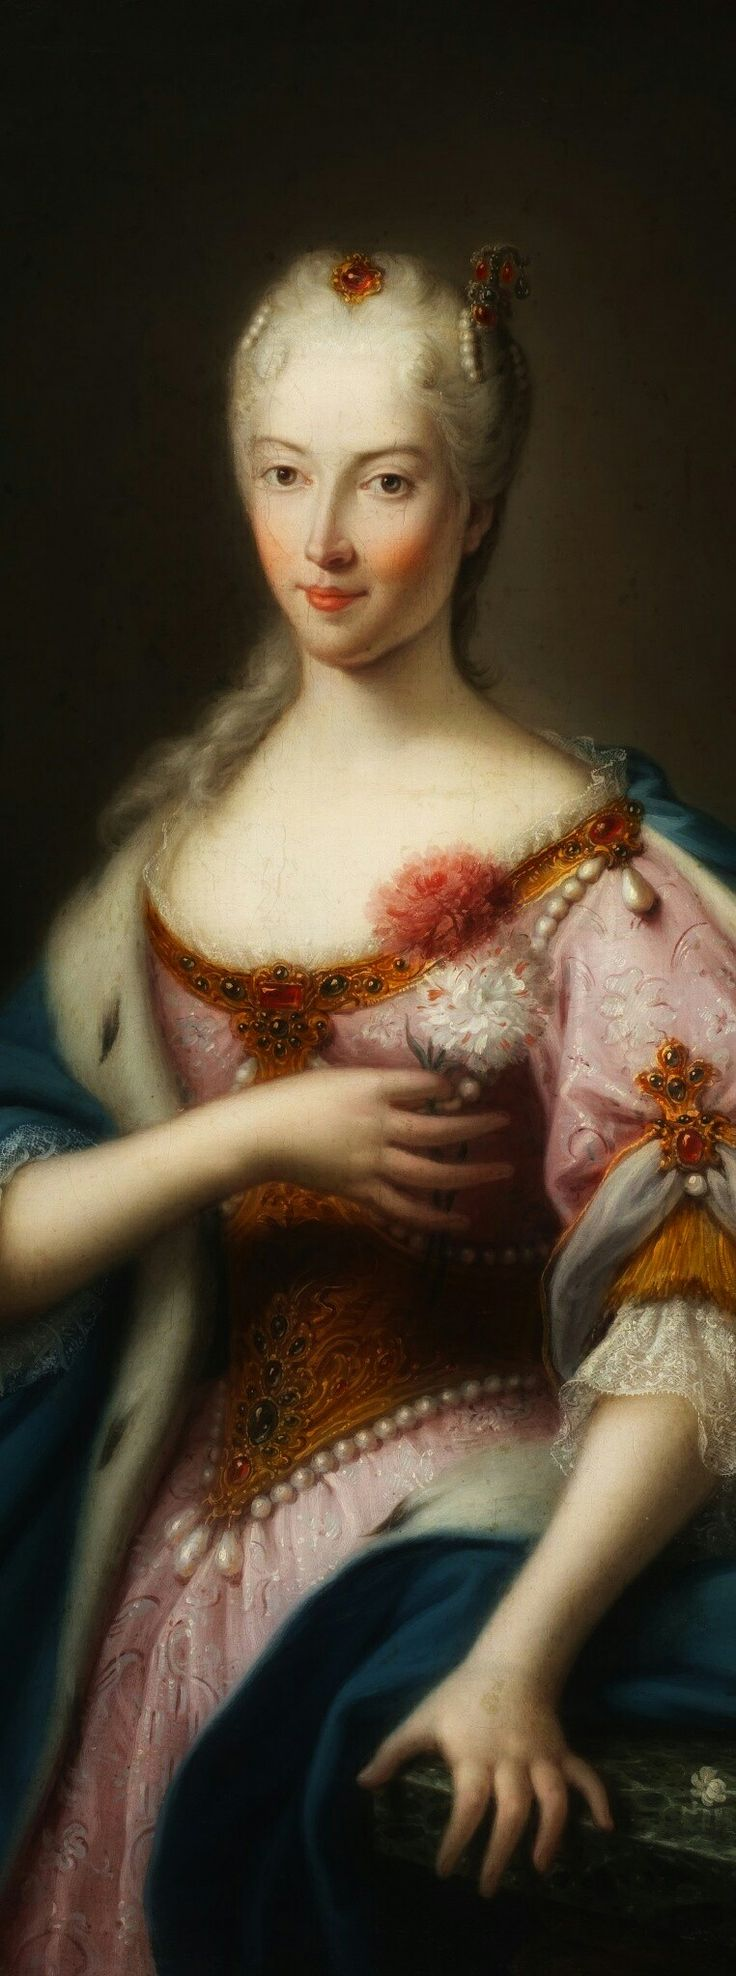 "Maria Clementina Sobieska (Polish noble) - Author Unknown XVIII.Maria Clementina Sobieska (sometimes spelled Maria Klementyna Sobieska) (18 July 1702 – 18 January 1735) was a Polish noblewoman, the granddaughter of the Polish king John III Sobieski, the wife of James Francis Edward Stuart, Jacobite pretender to the British throne, and mother of Charles Edward Stuart, the ""Young Pretender"" #portrait#painting#mariaklementynasobieska#mariaclementinasobieska#sobiesky#polishnoble#poland"